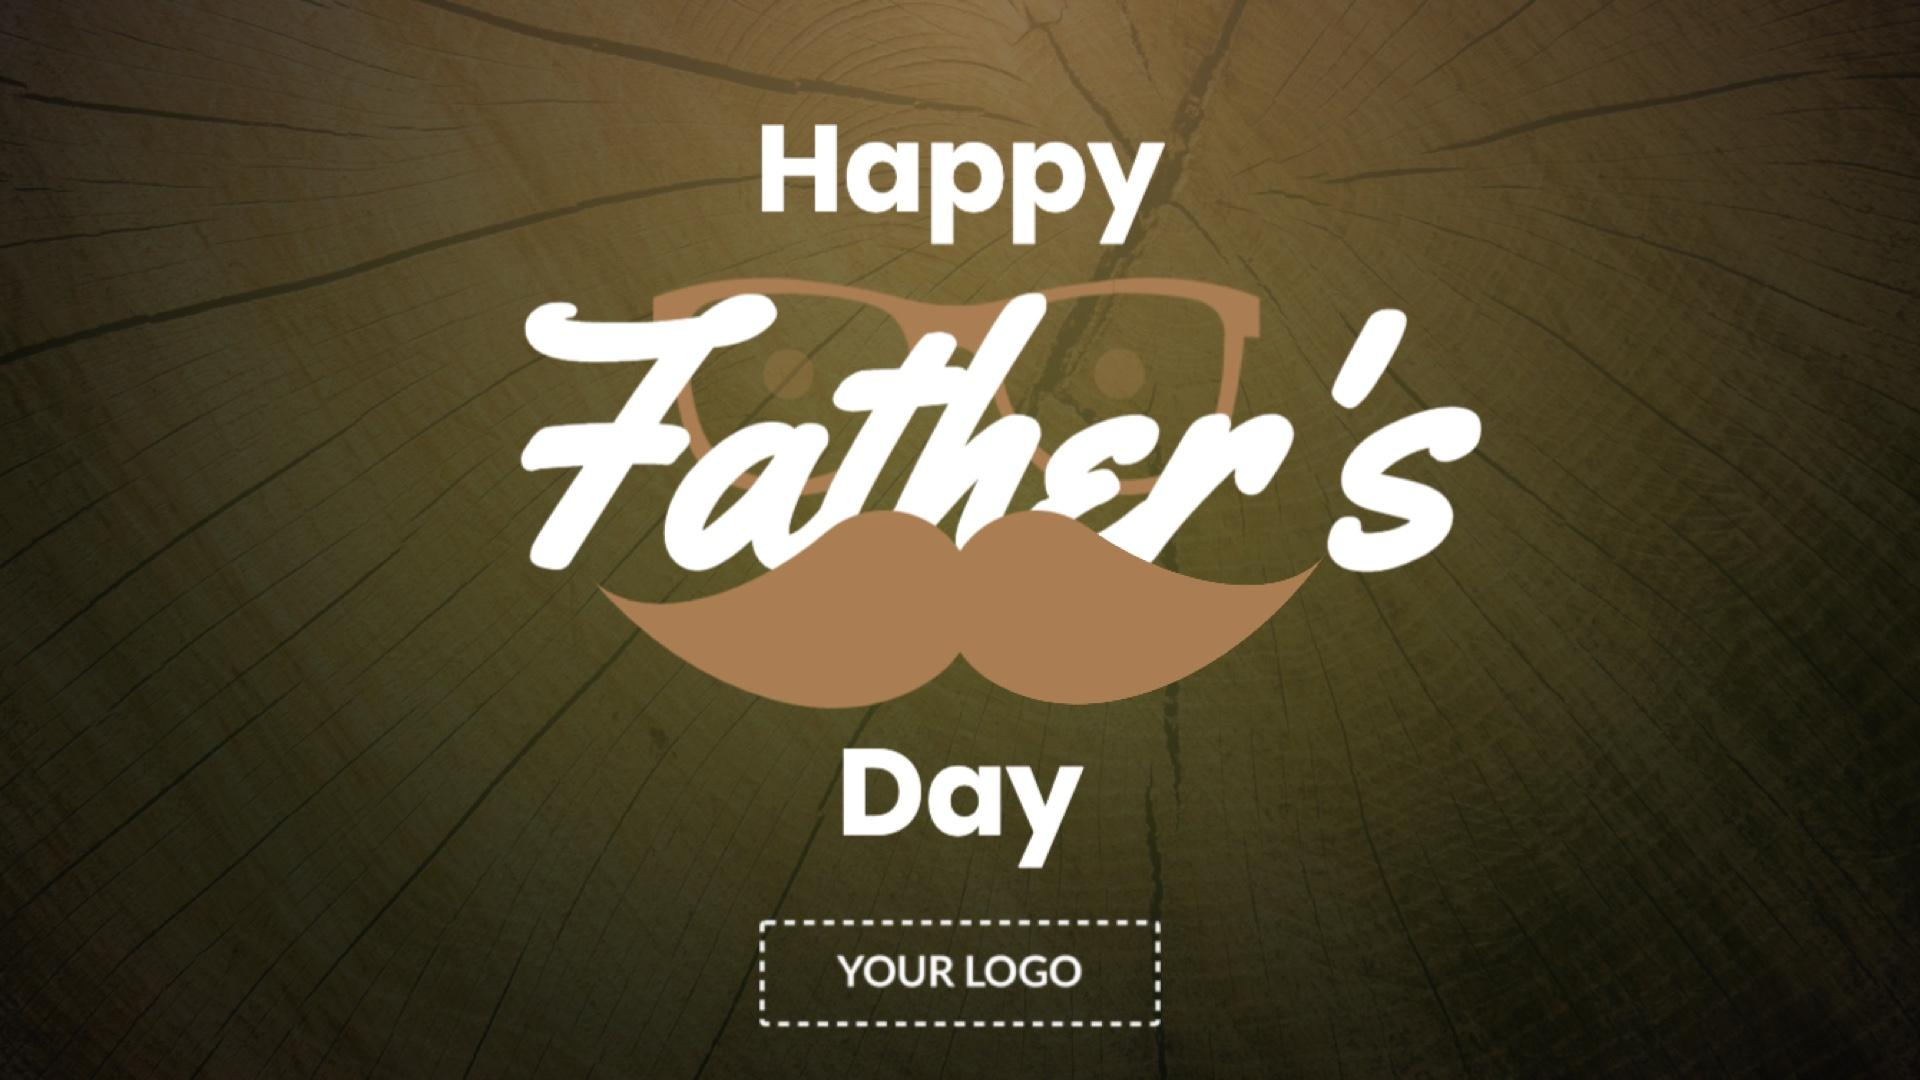 Holiday Father's Day Digital Signage Template